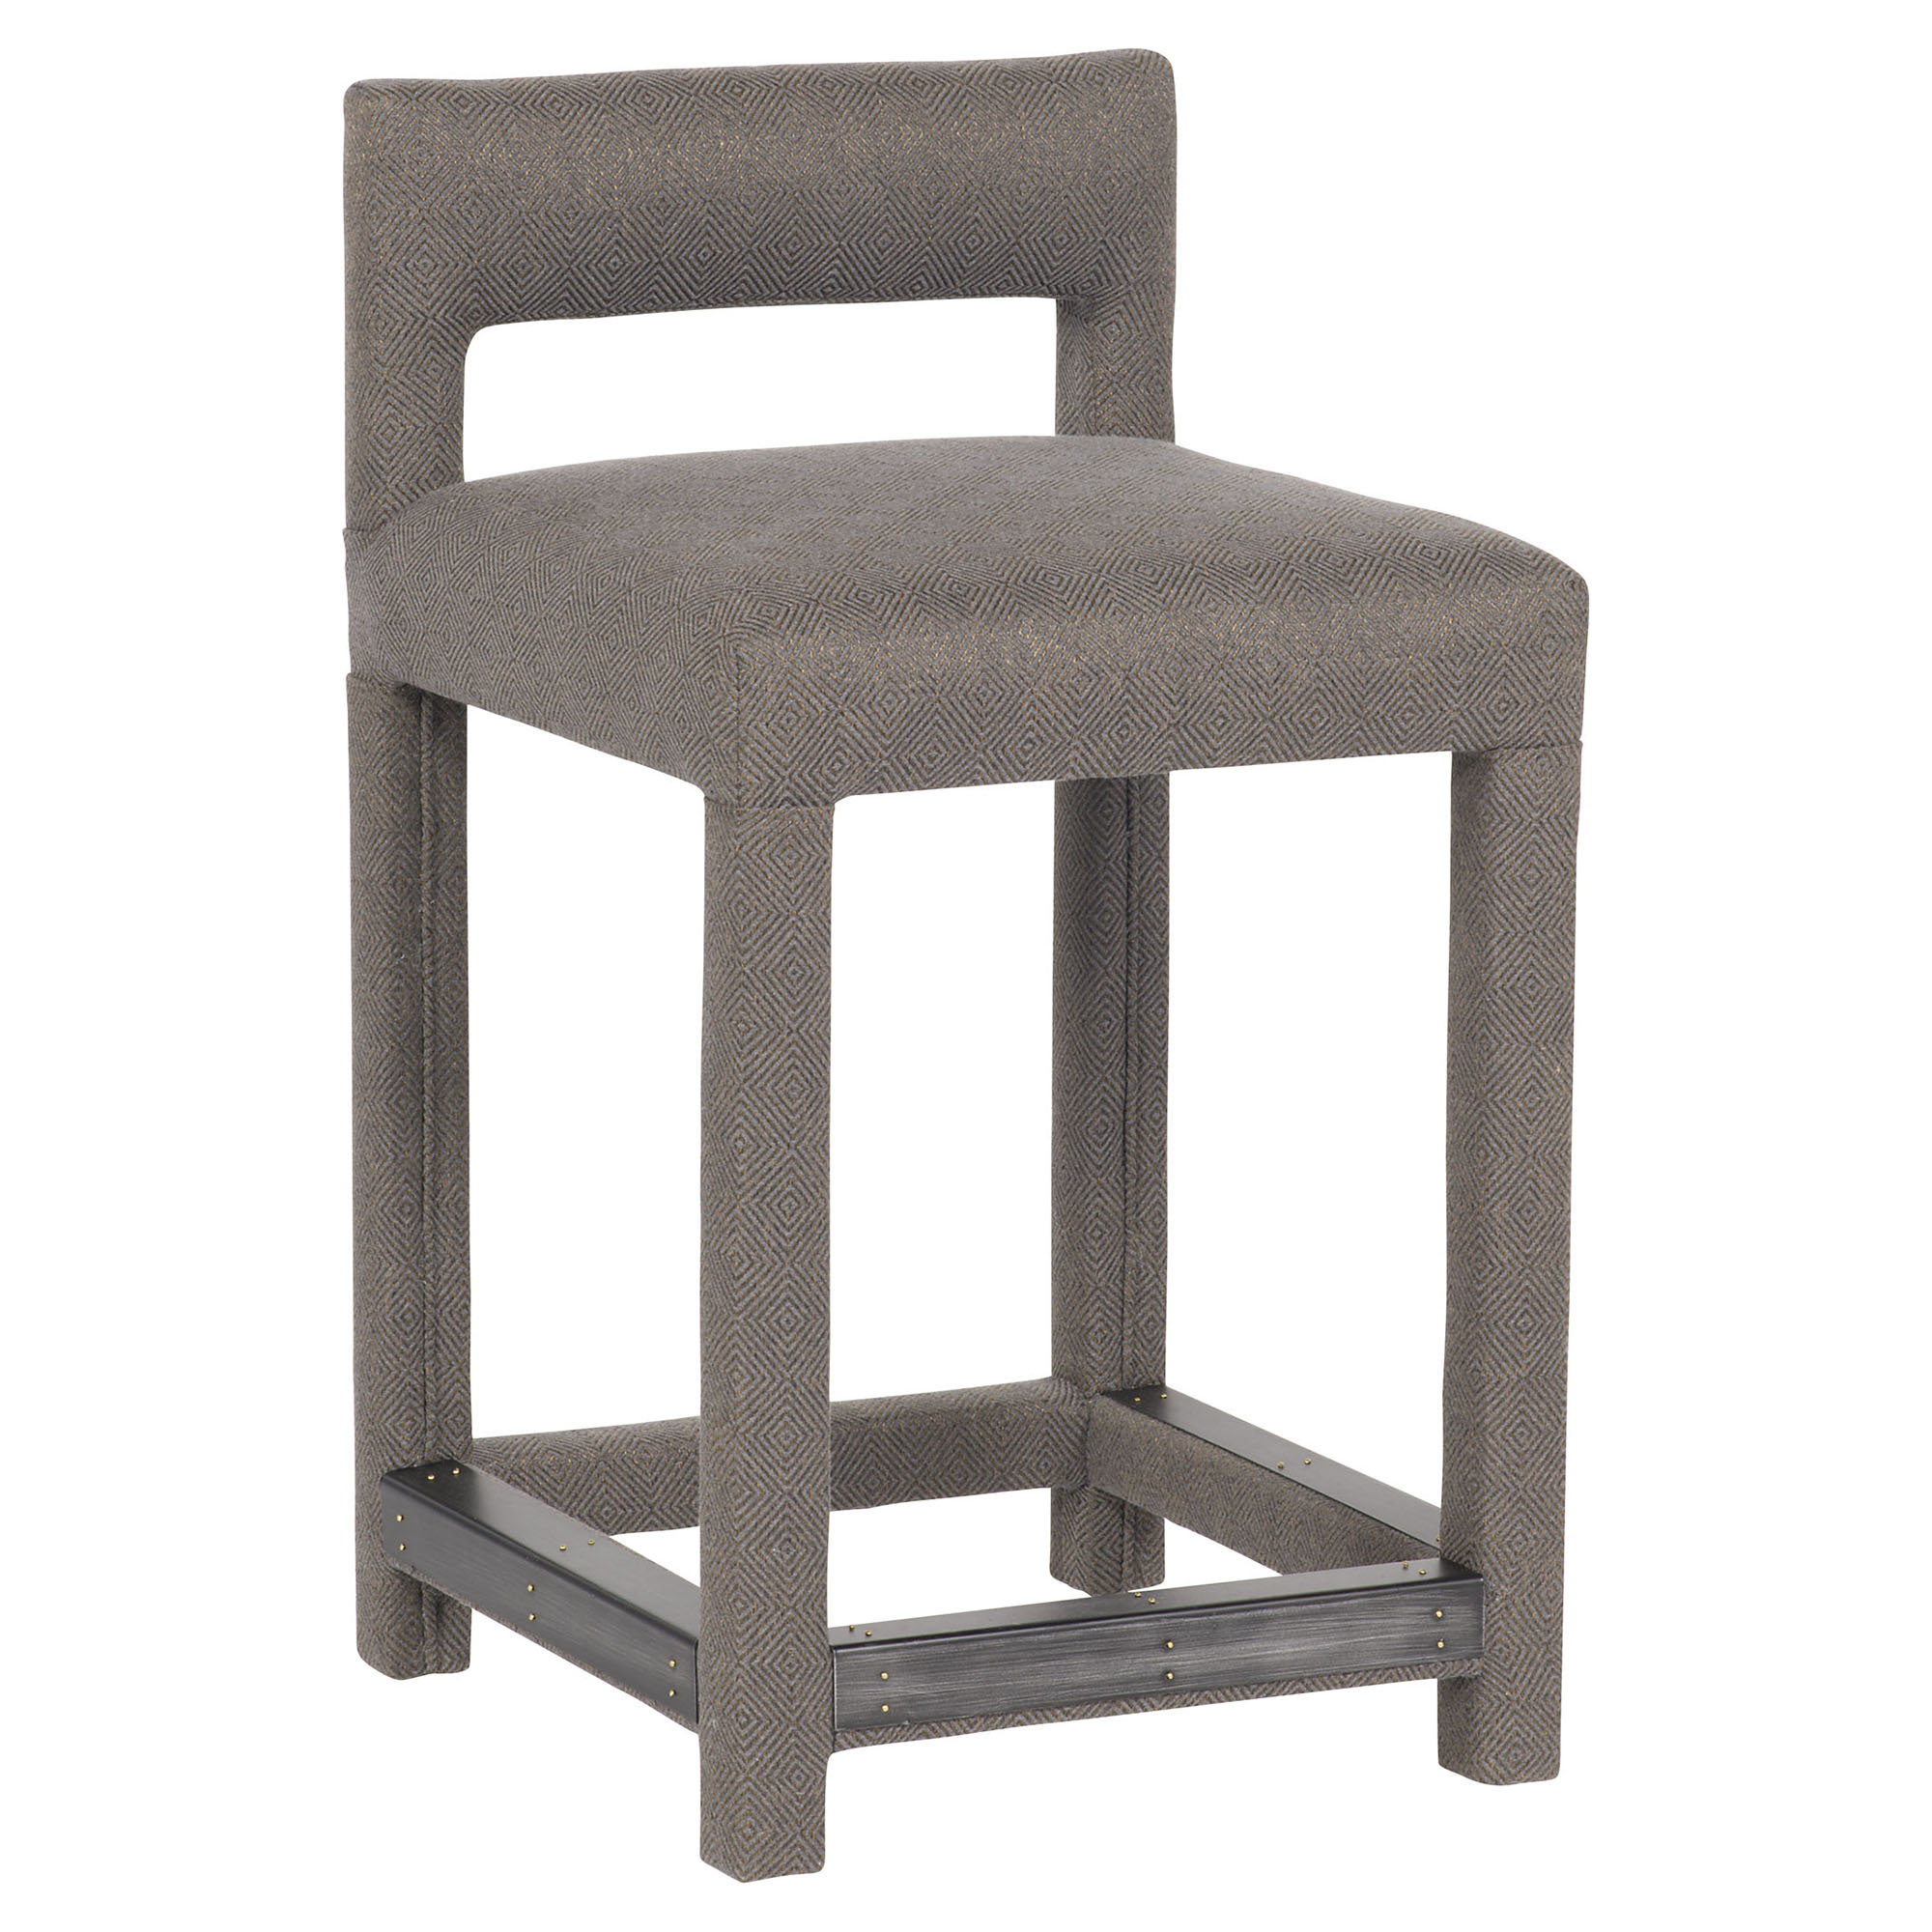 stool counter jofran with inc x height table set piece dove grey back stools simplicity